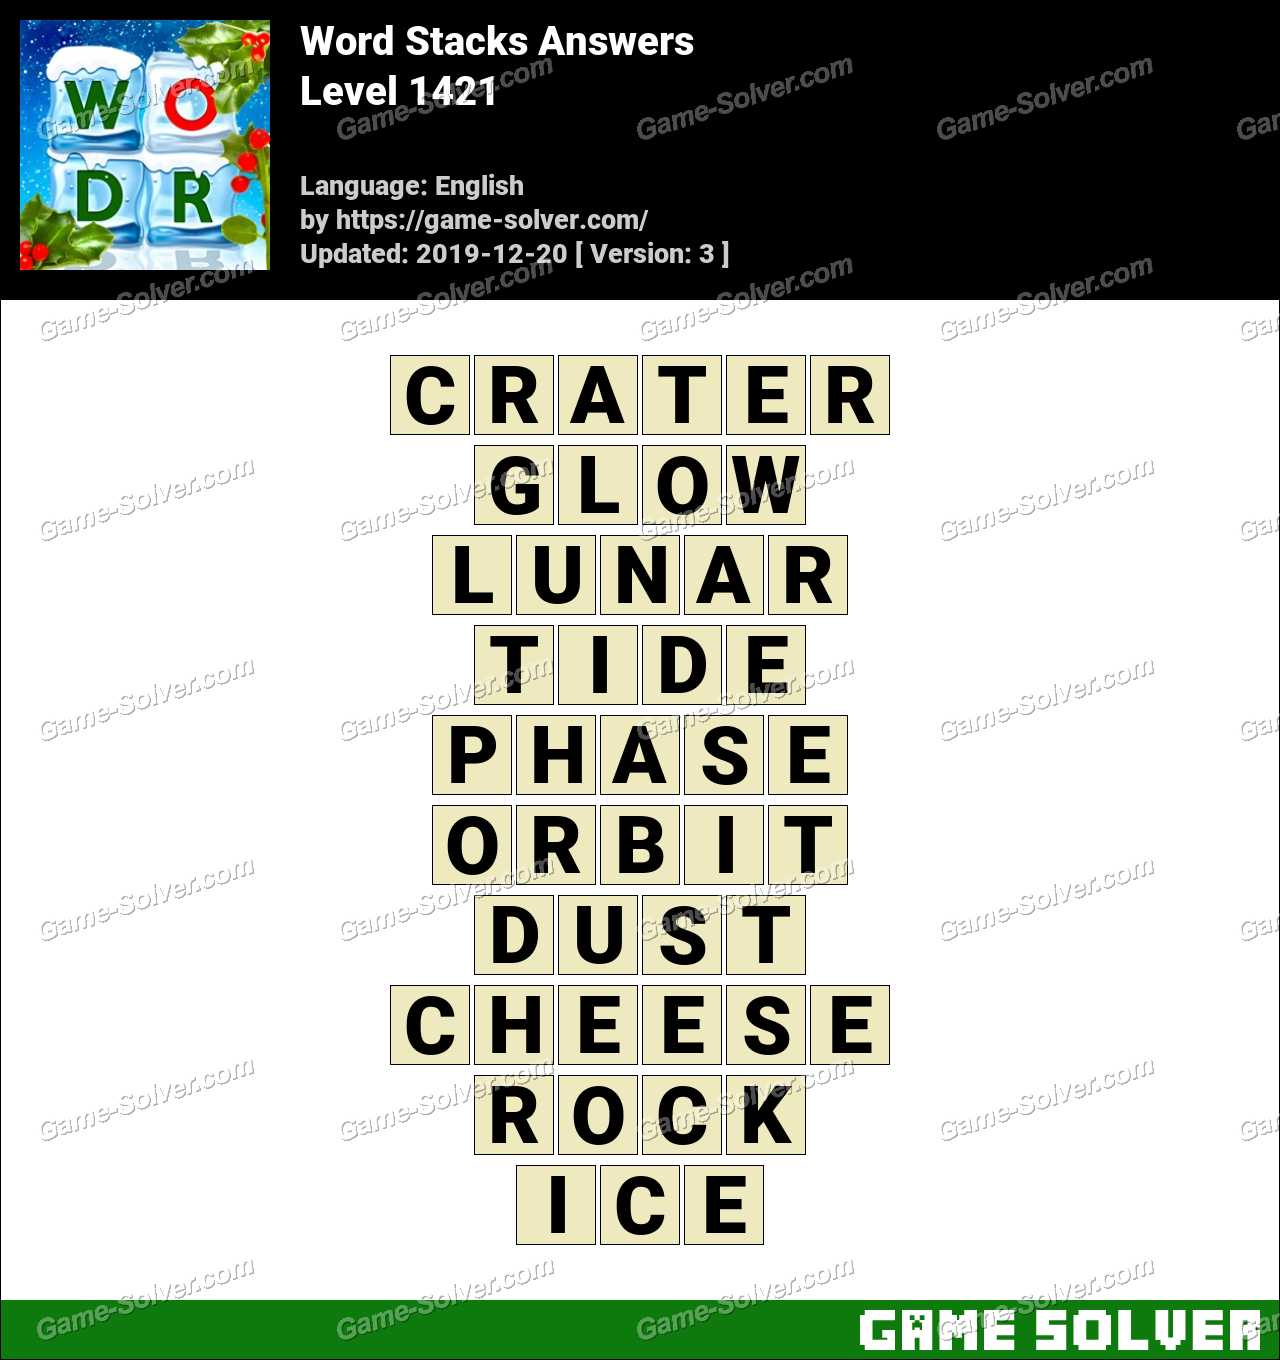 Word Stacks Level 1421 Answers